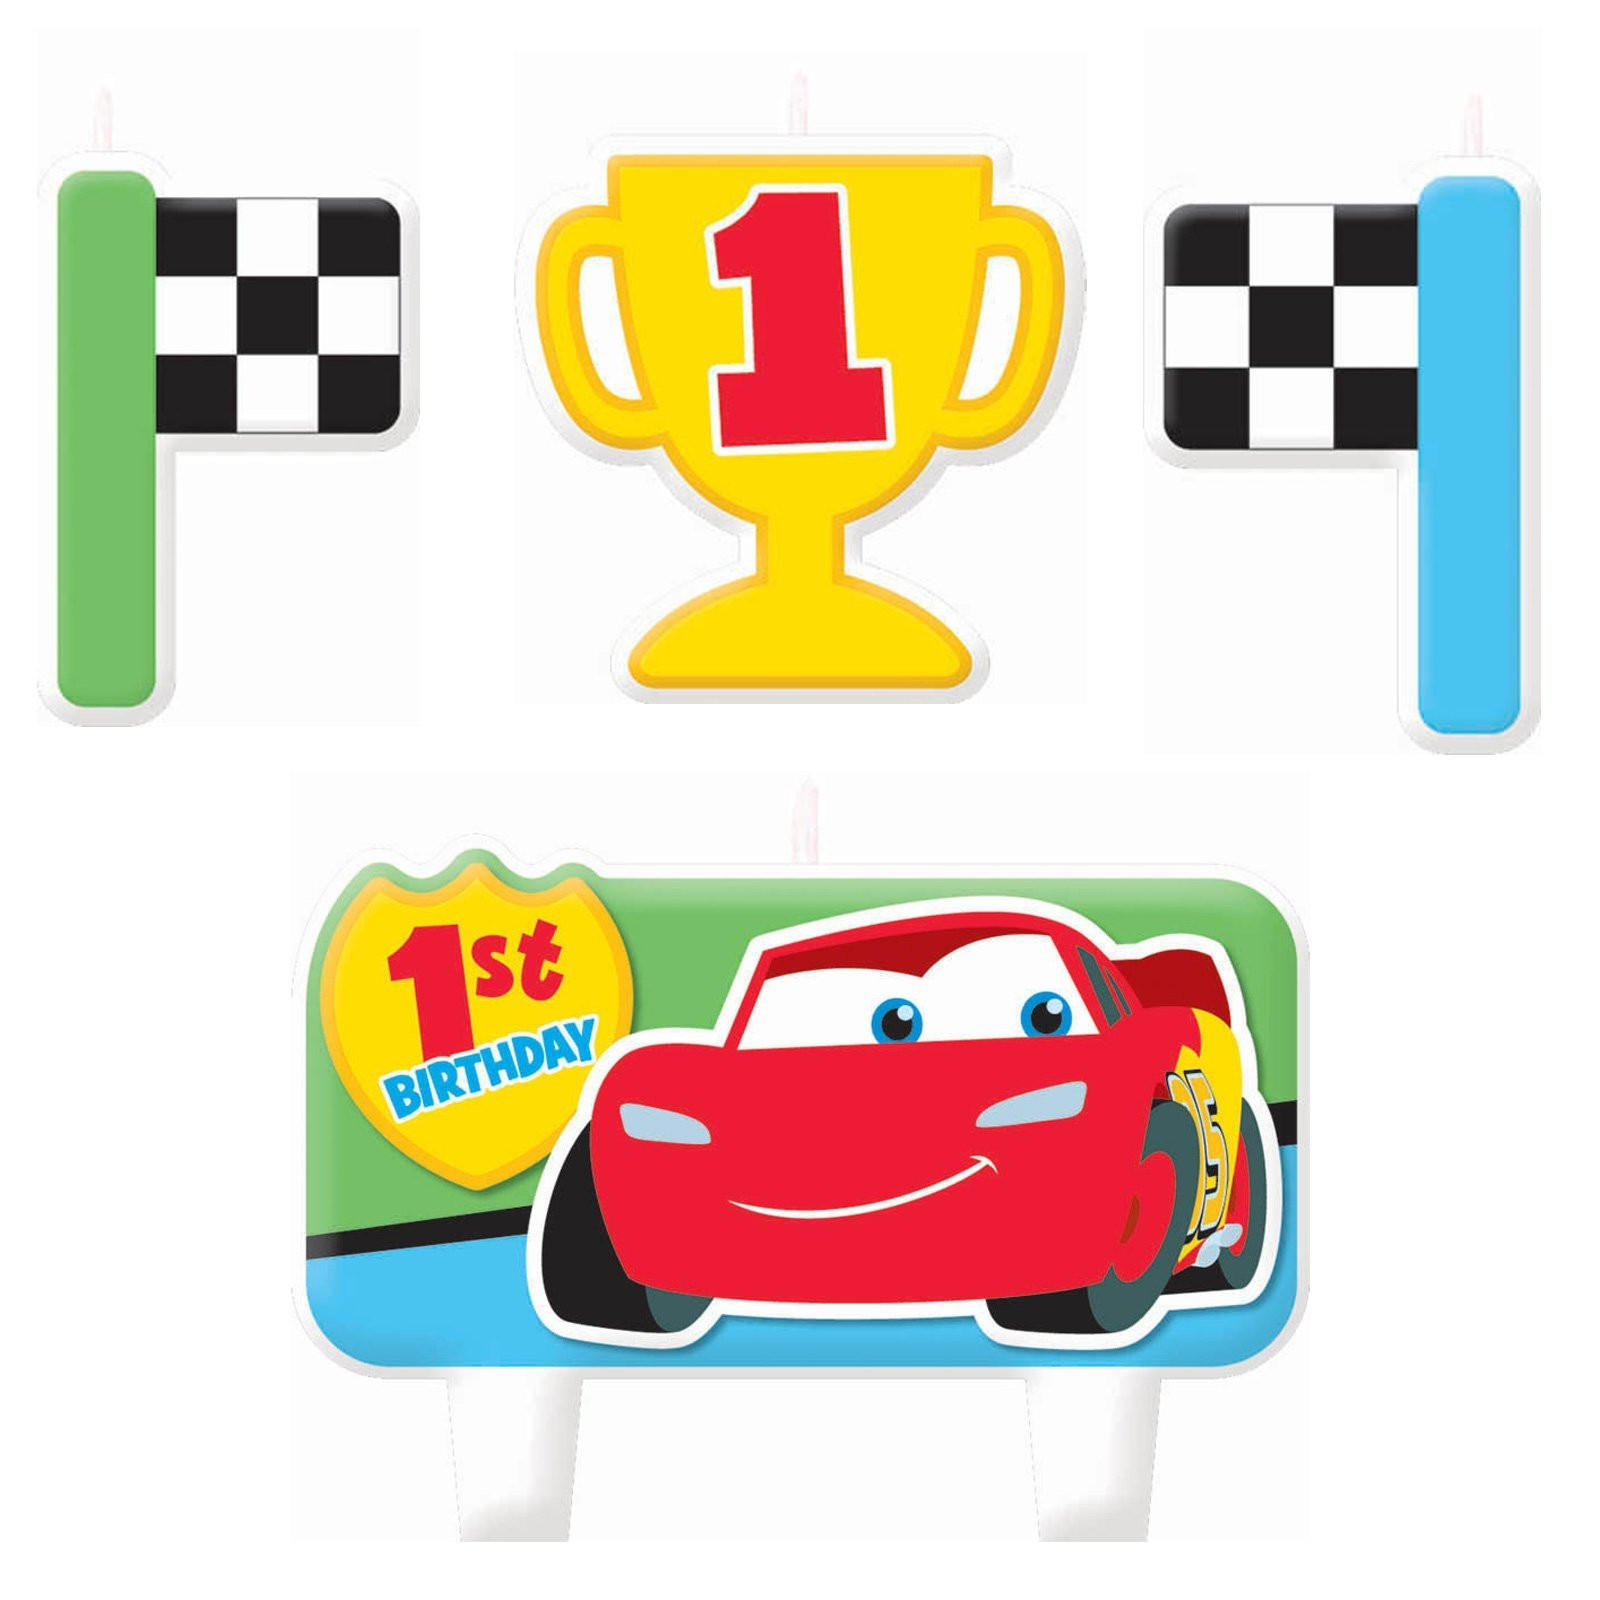 Birthday clipart car 1st Best 17 Collection car